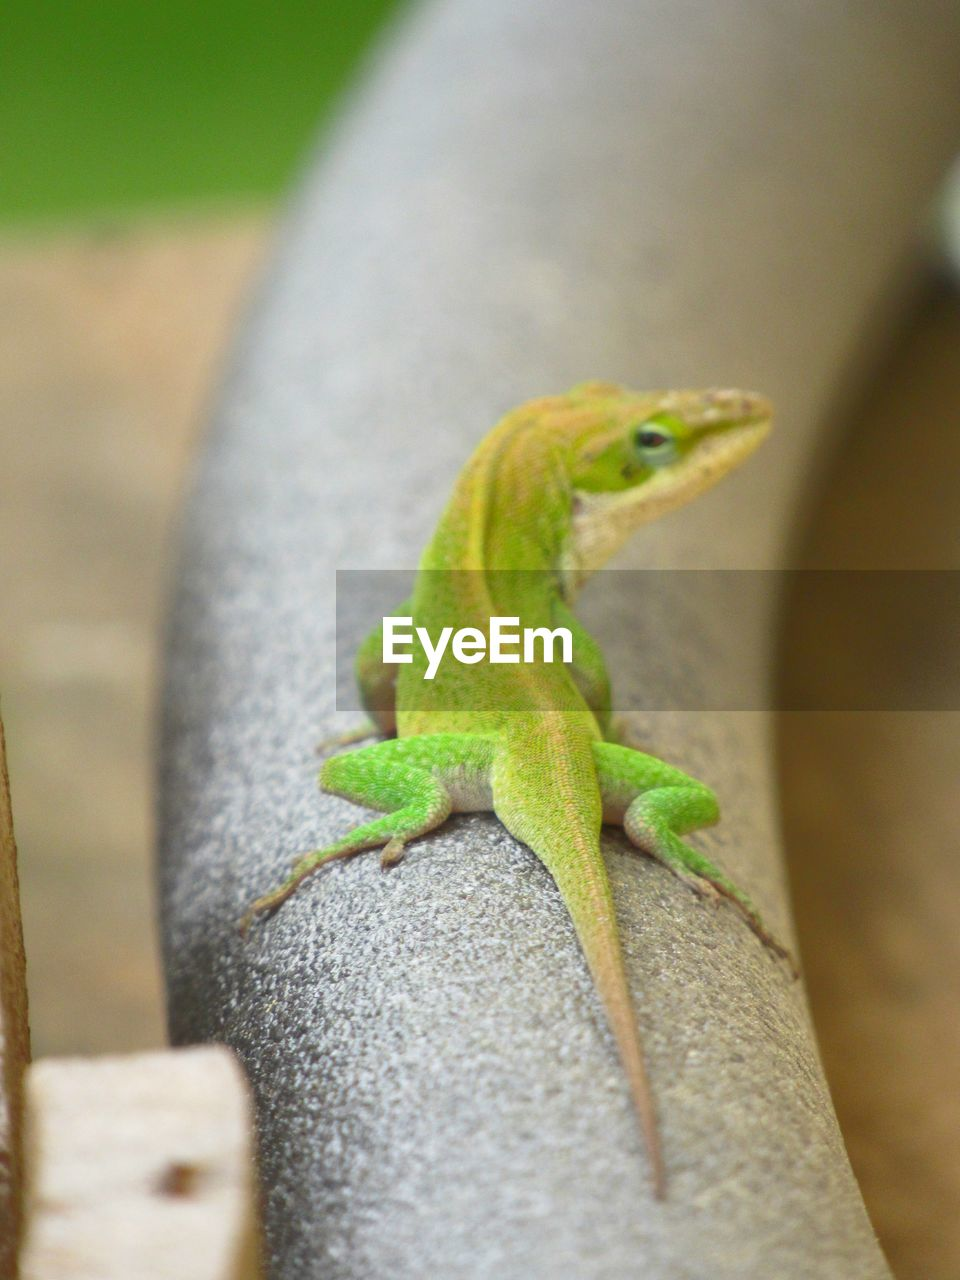 animal themes, animal, one animal, animal wildlife, animals in the wild, vertebrate, lizard, reptile, no people, green color, close-up, selective focus, day, nature, focus on foreground, outdoors, animal body part, animal scale